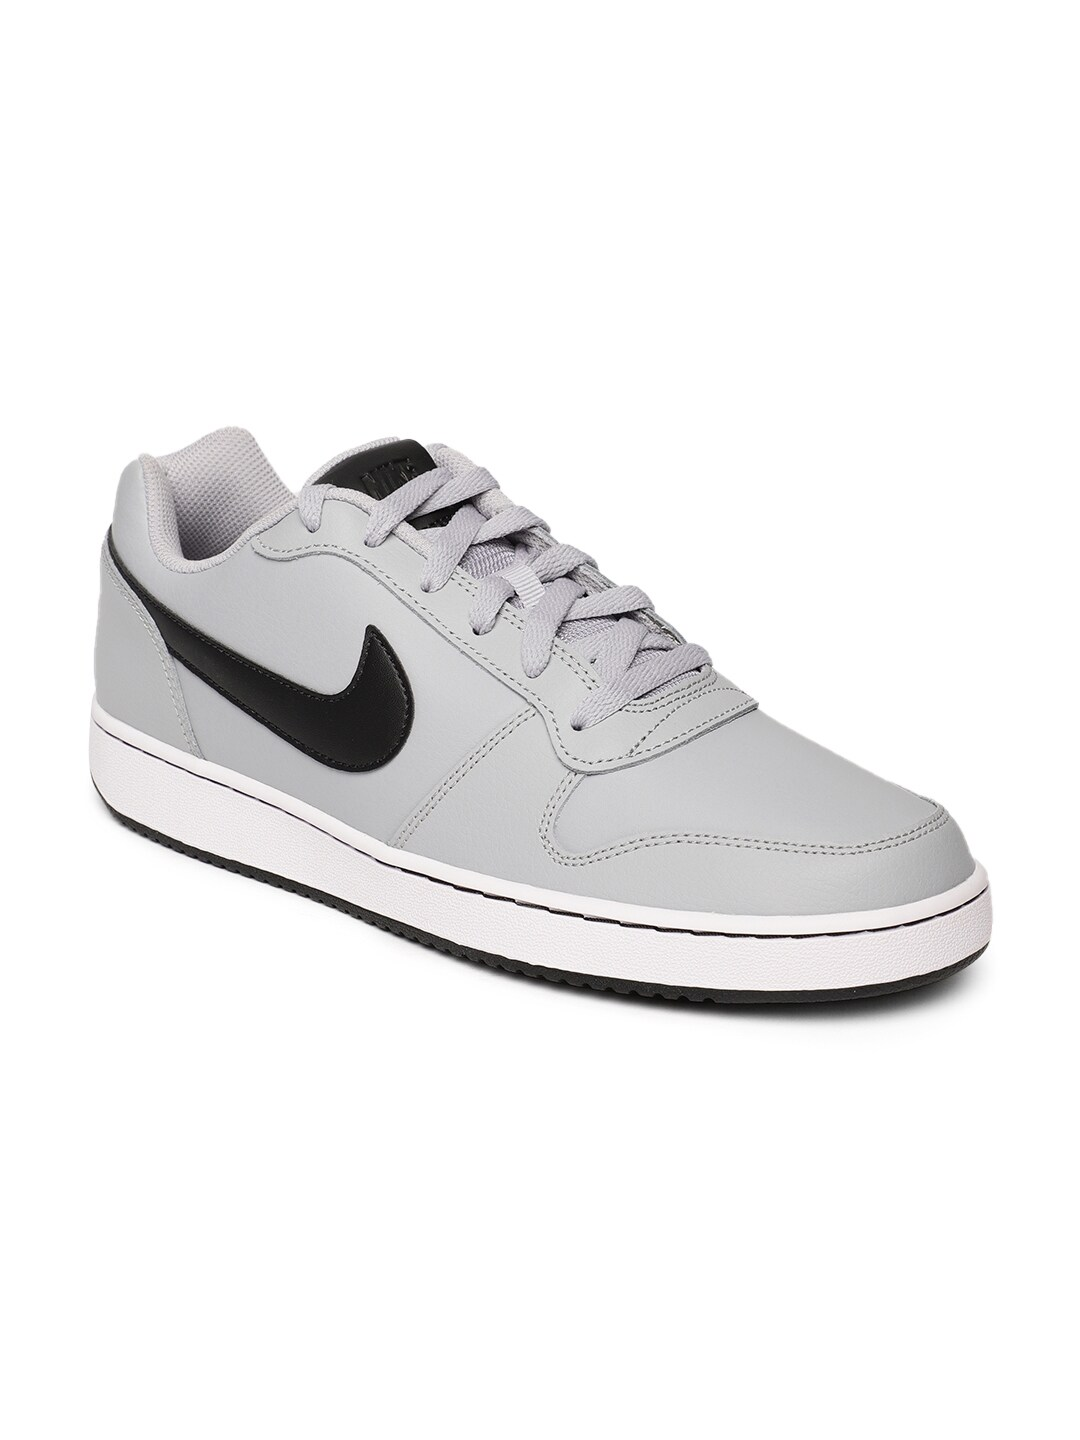 647f4c7fb73 Nike Shoes - Buy Nike Shoes for Men